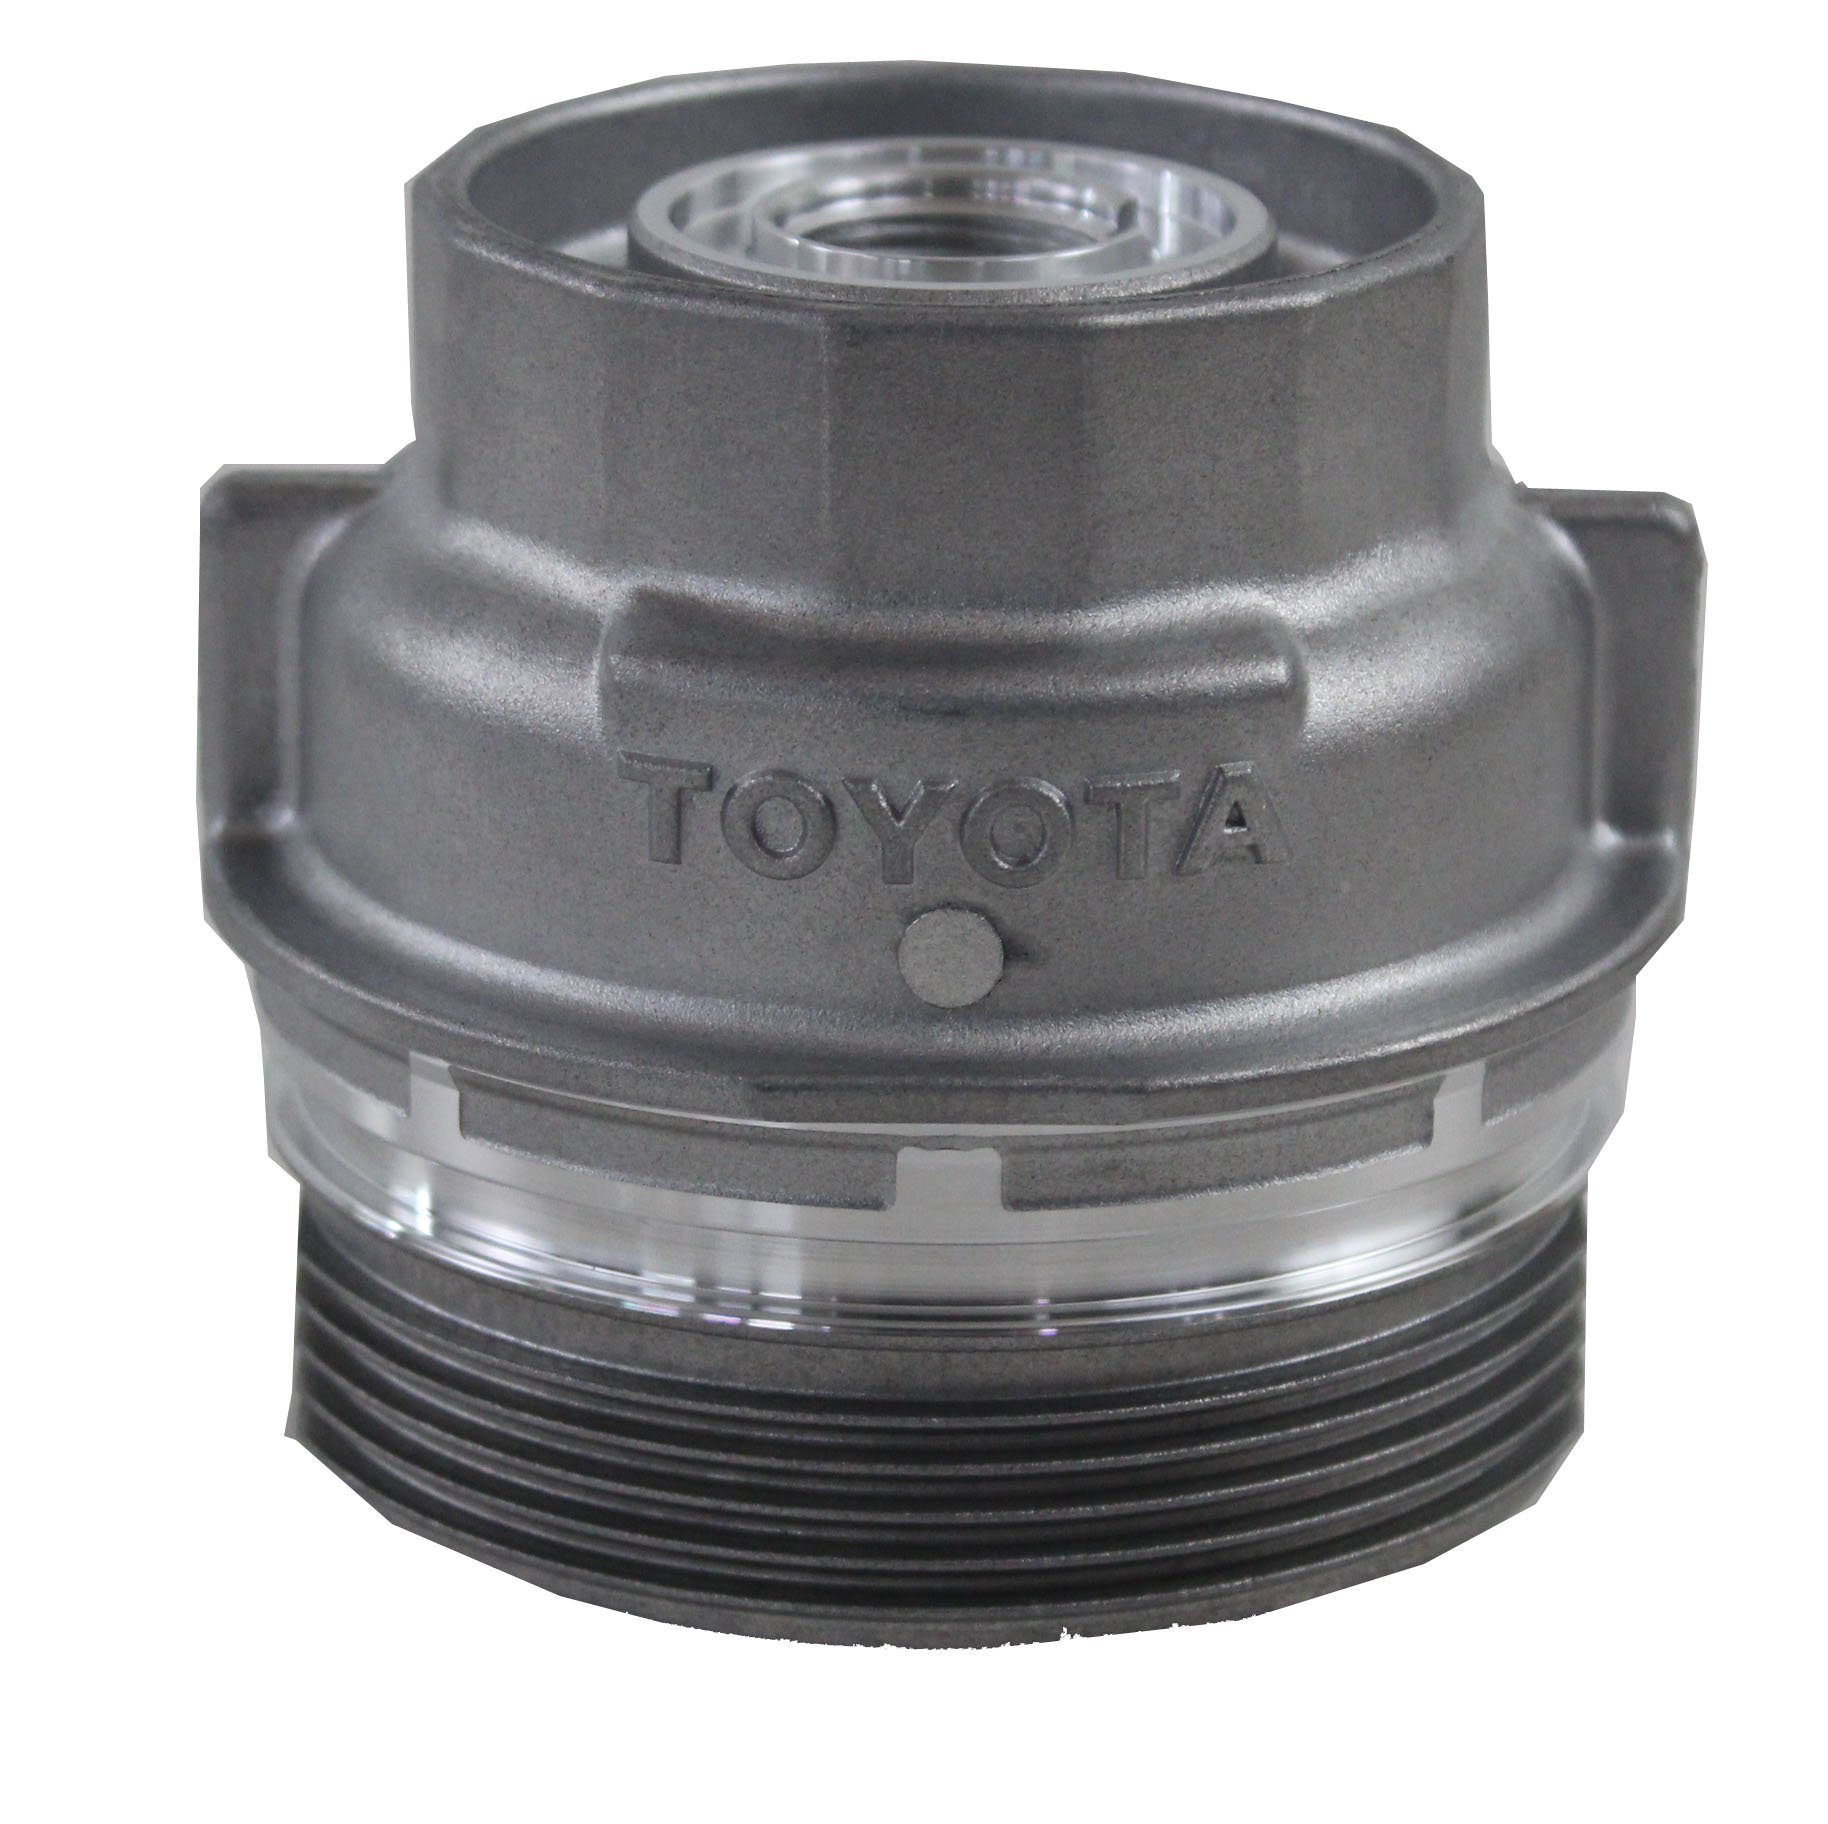 Genuine Toyota 15620-31060 Oil Filter Cap Assembly by Toyota